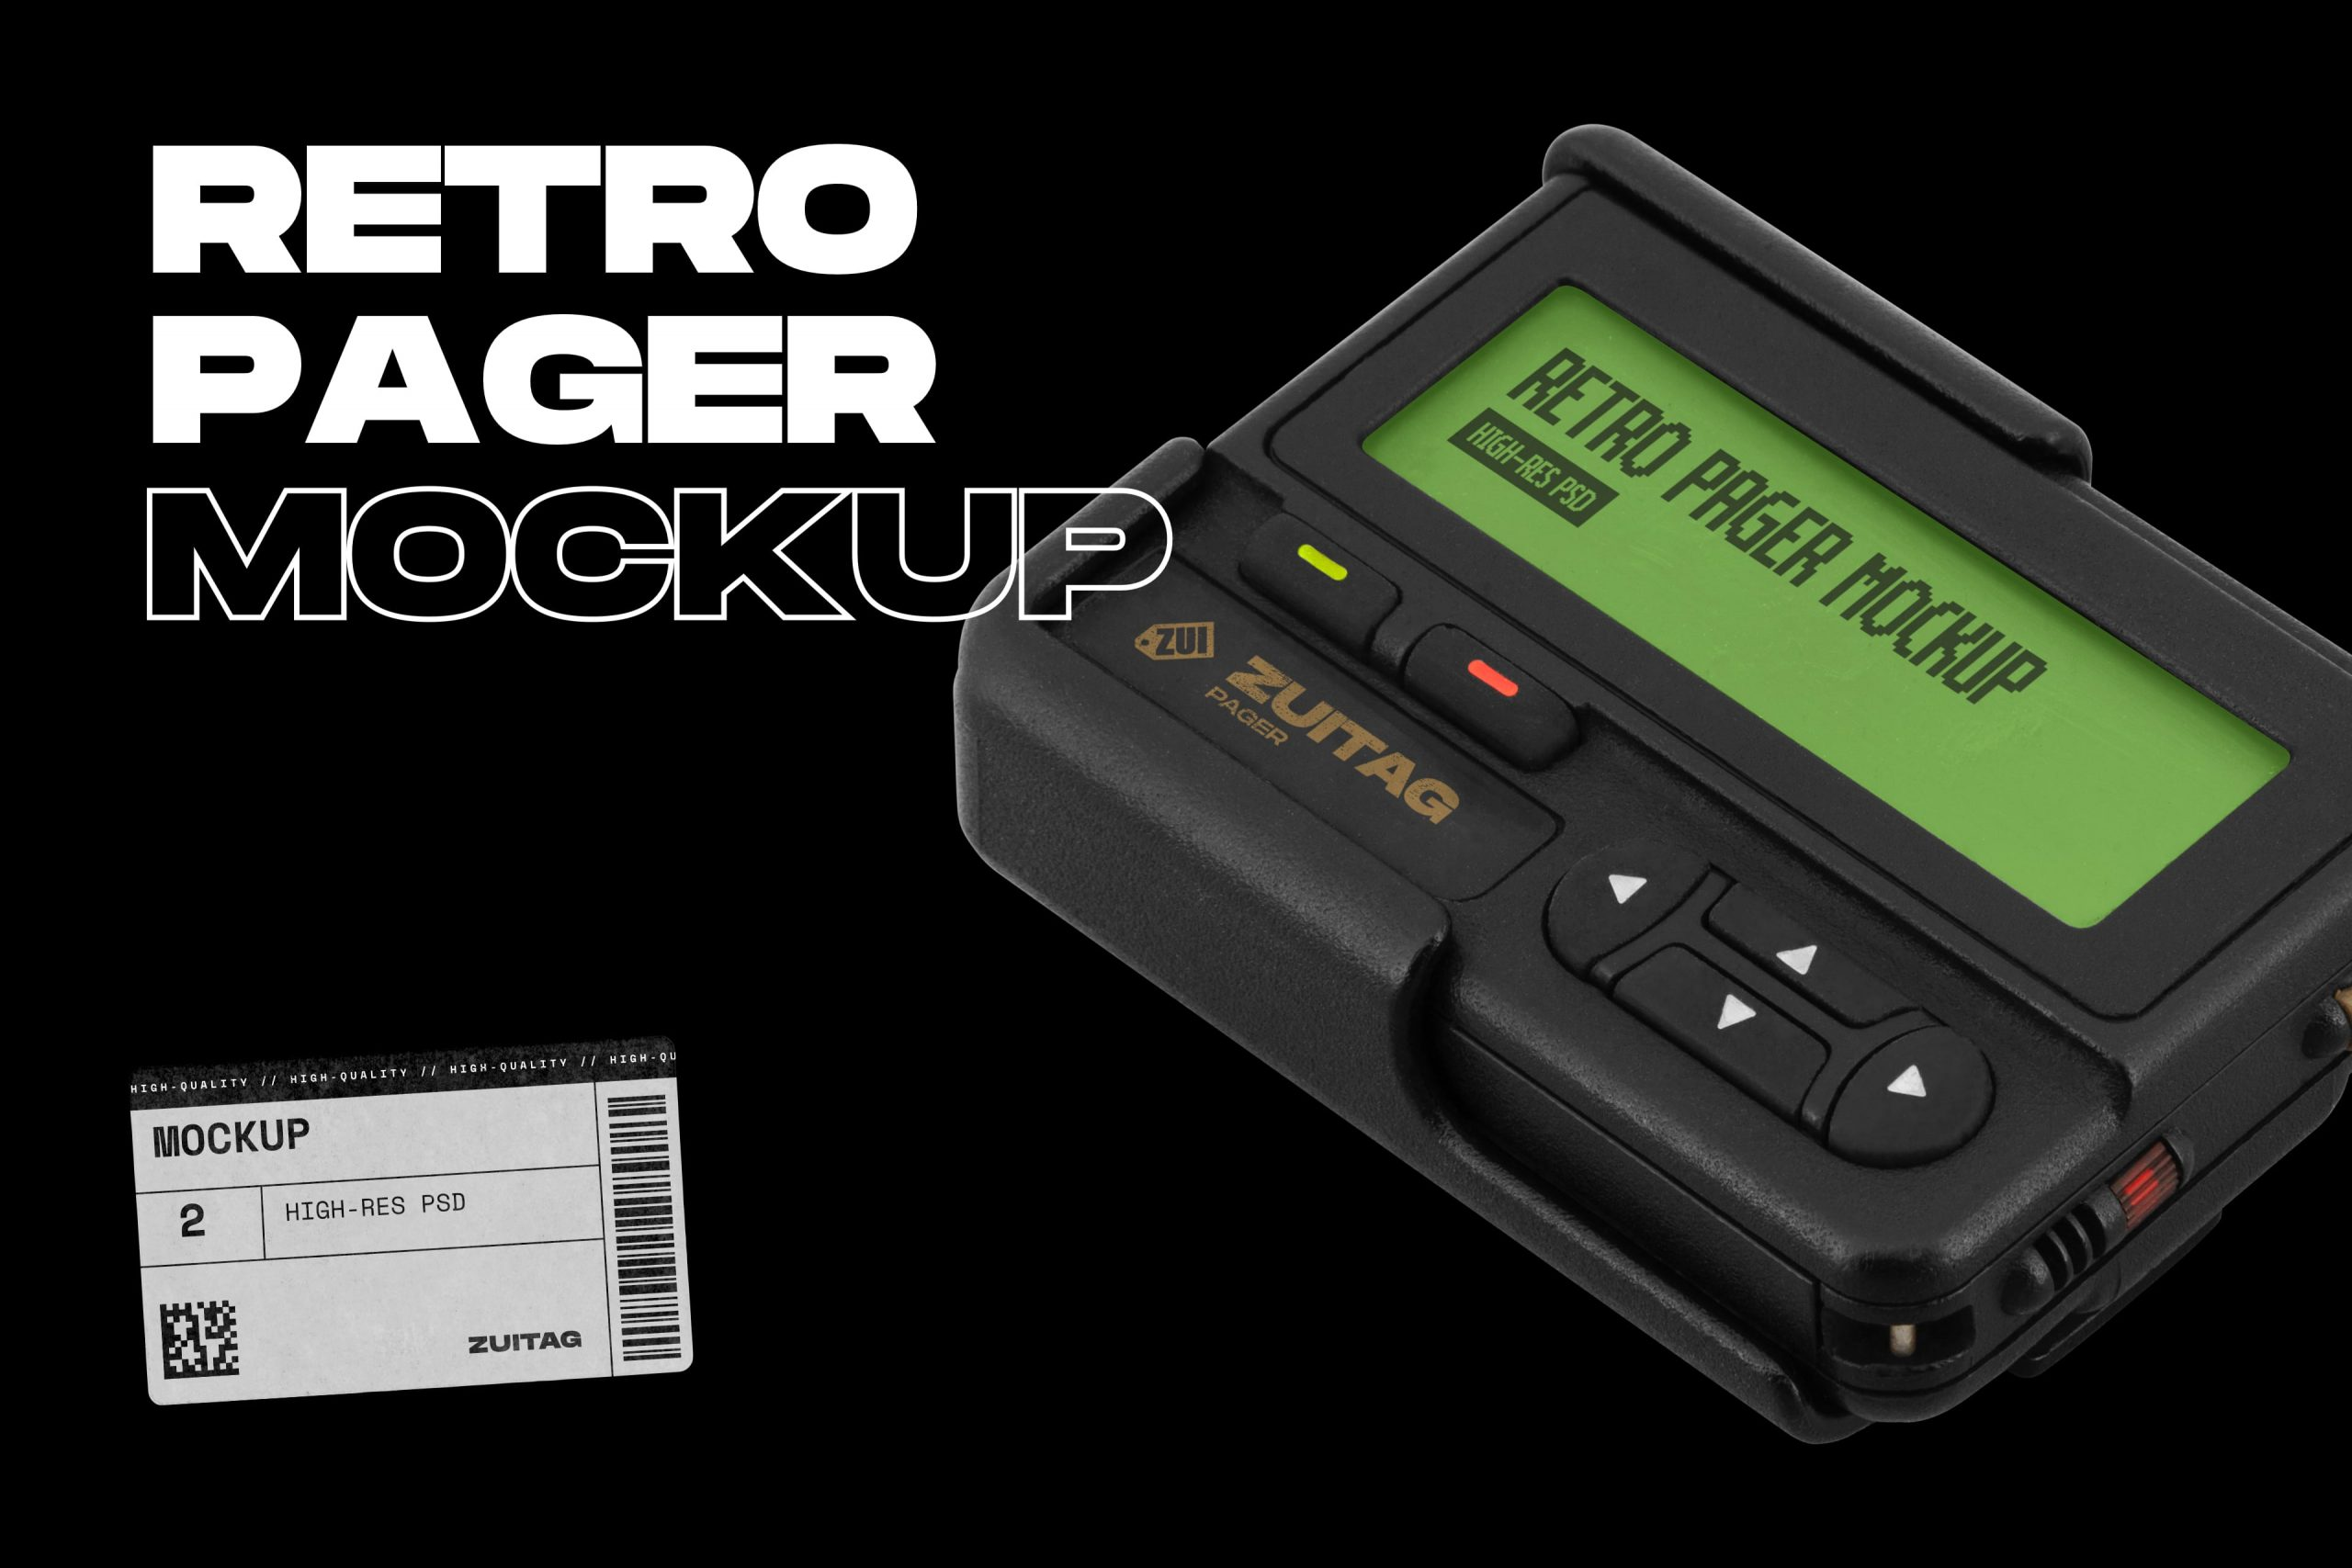 Retro Pager Mockup - Cover